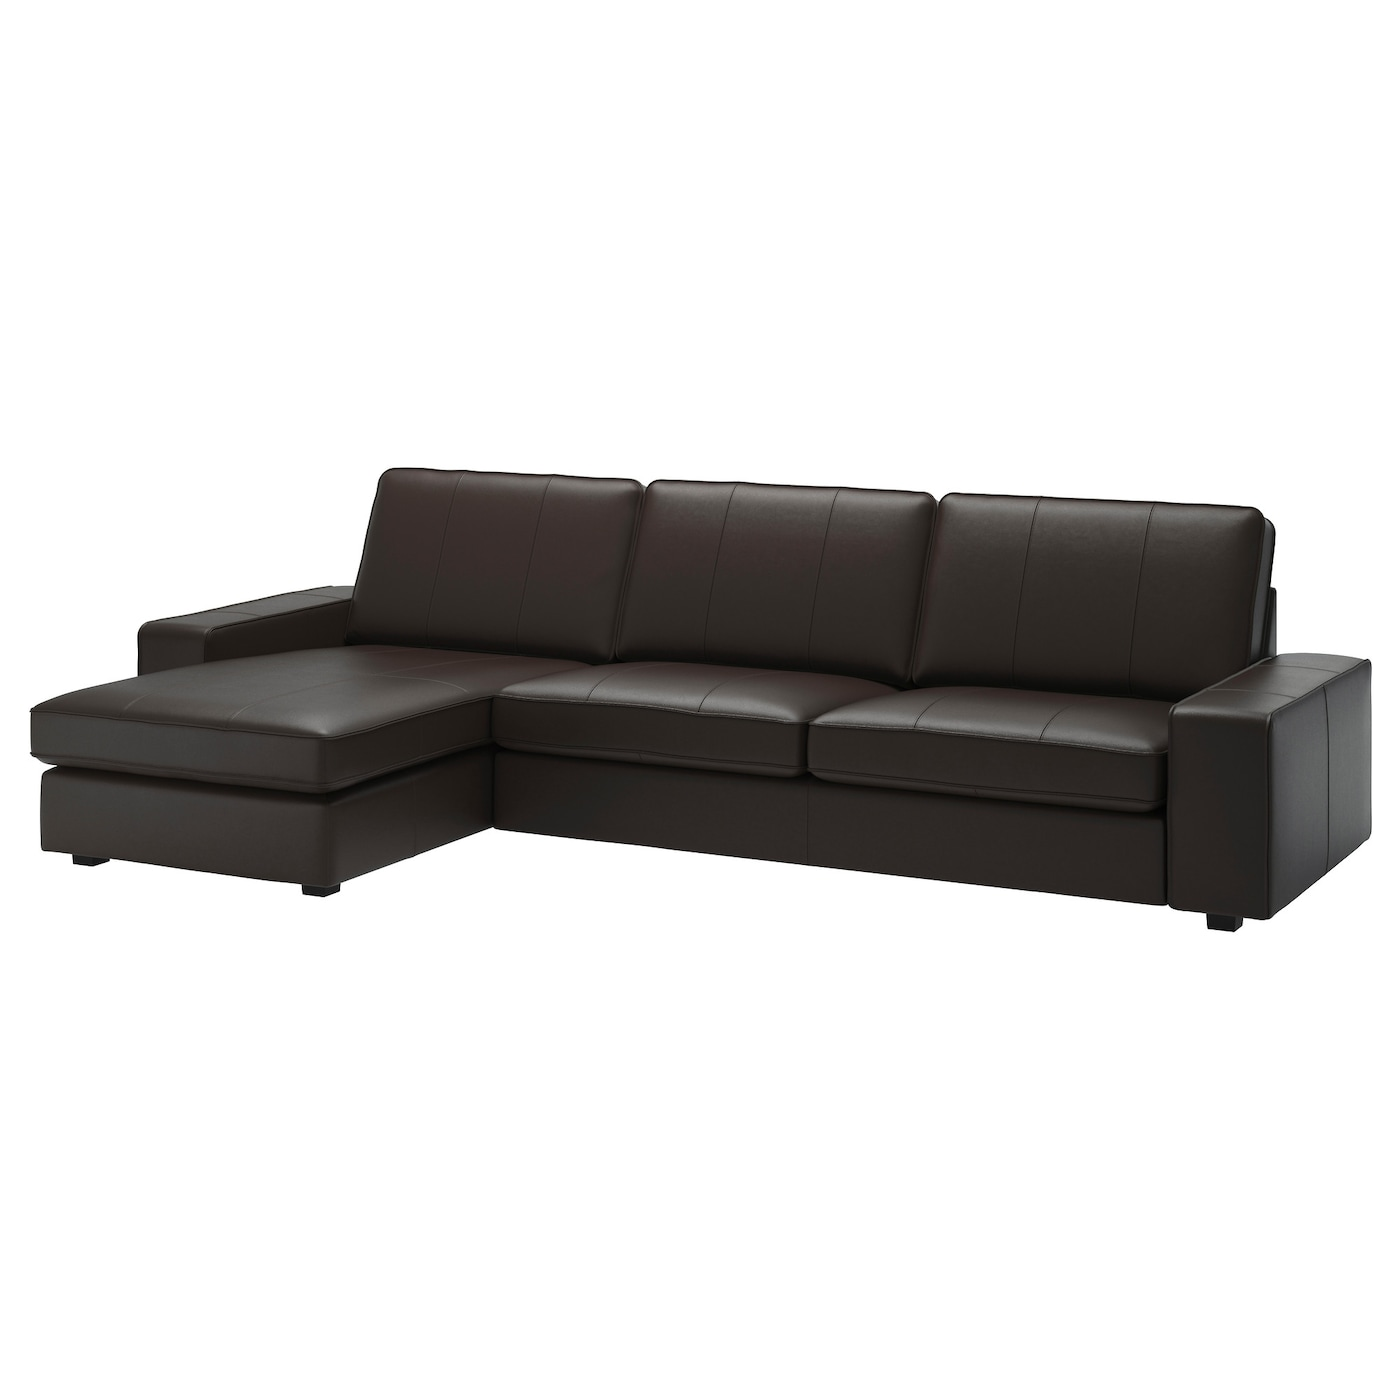 kivik 4 seat sofa with chaise longue grann bomstad dark brown ikea. Black Bedroom Furniture Sets. Home Design Ideas